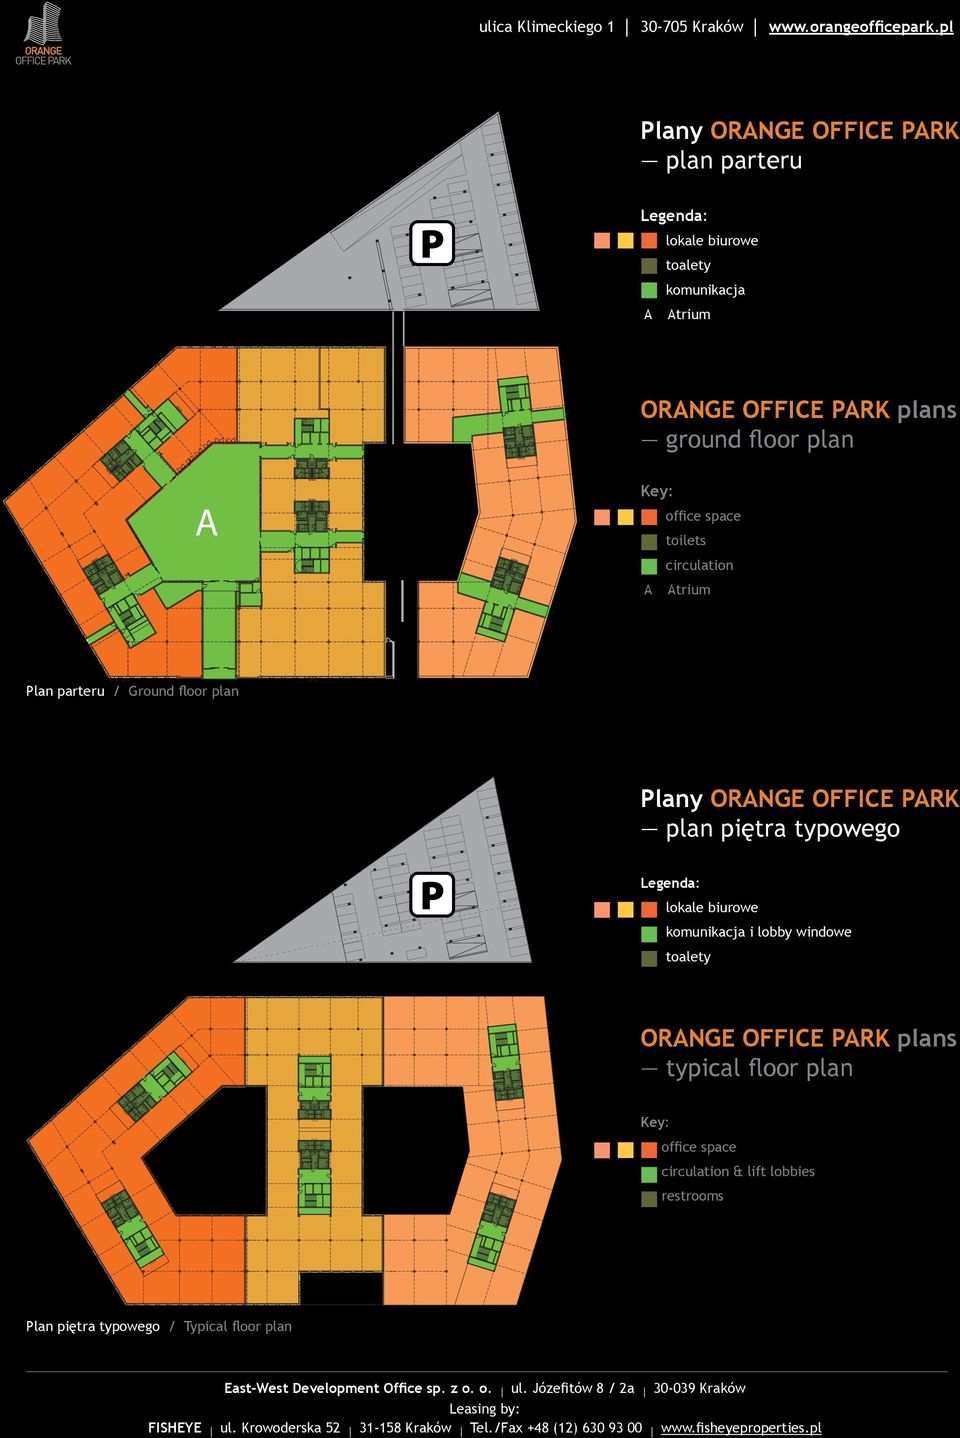 ORANGE OFFICE PARK plan piętra typowego P Legenda: lokale biurowe komunikacja i lobby windowe toalety ORANGE OFFICE